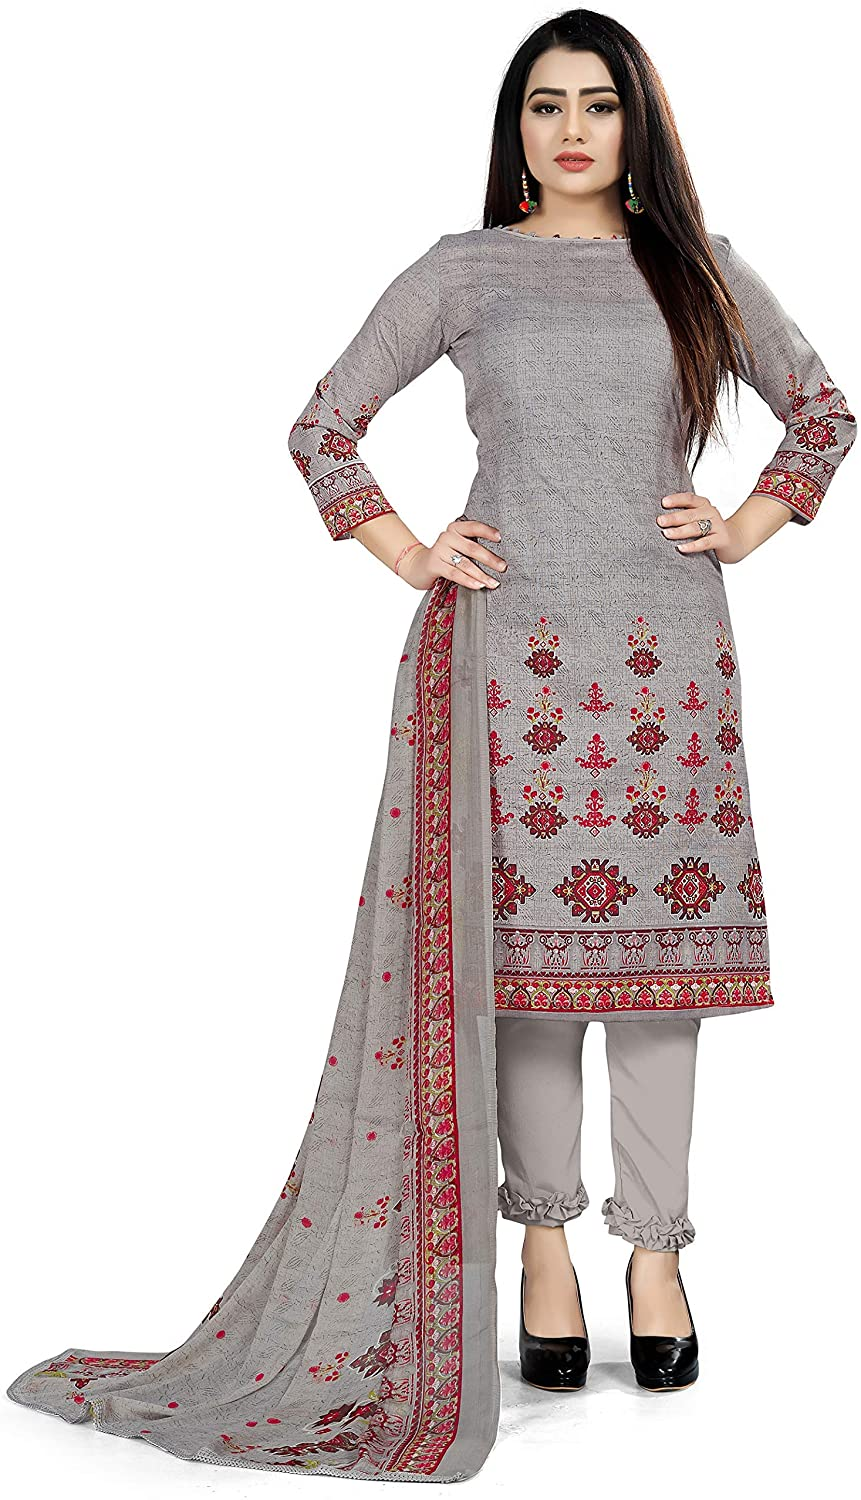 Women's Cotton & Chiffon Unstitched Salwar Suits with Dupatta Dress Material Indian Ethnic Wear for Girl Grey